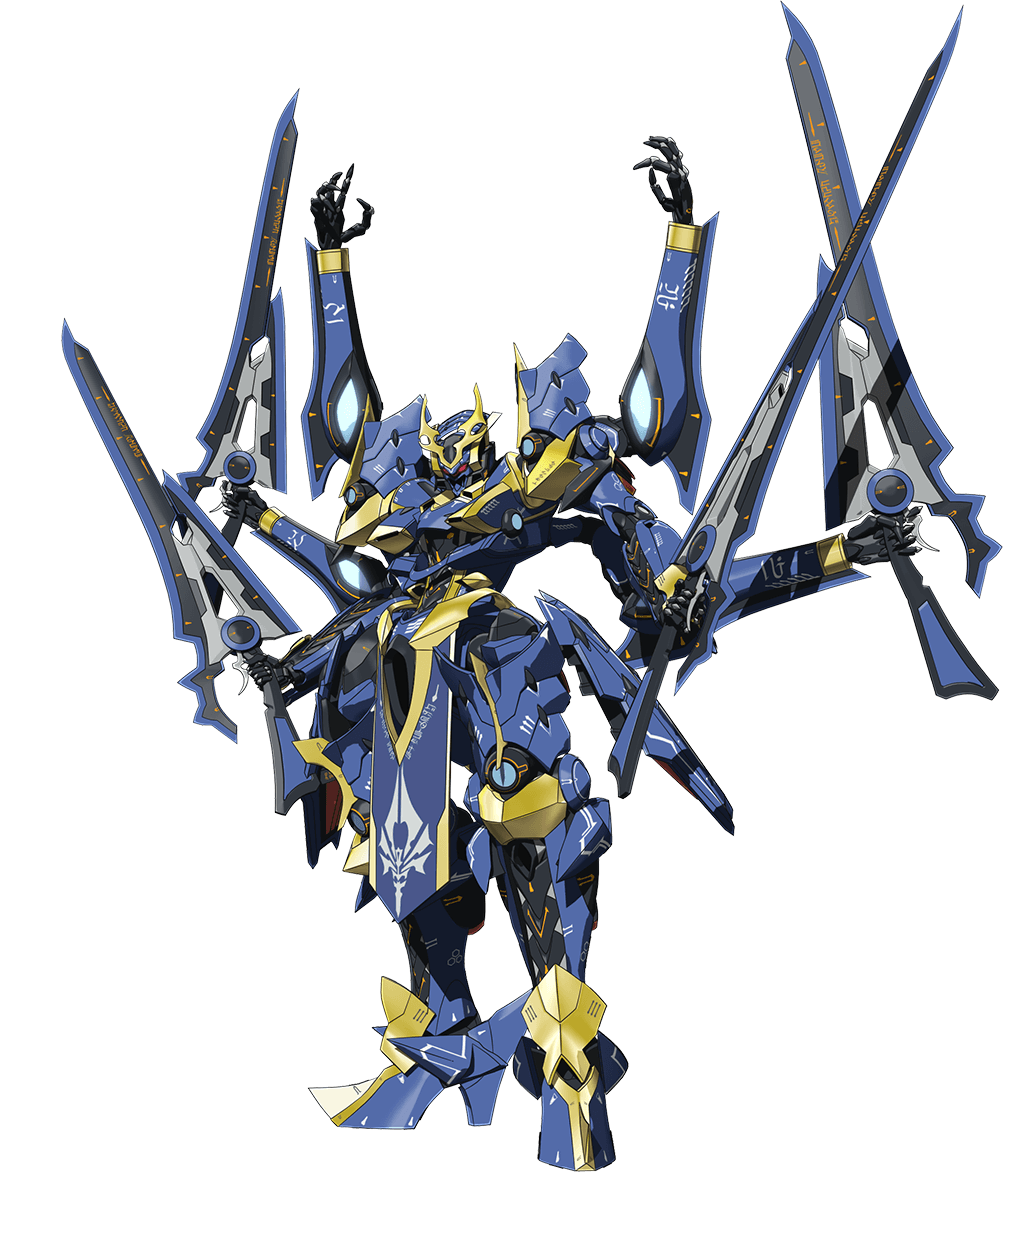 Ikaruga knight s magic. Anime robot png clipart transparent stock